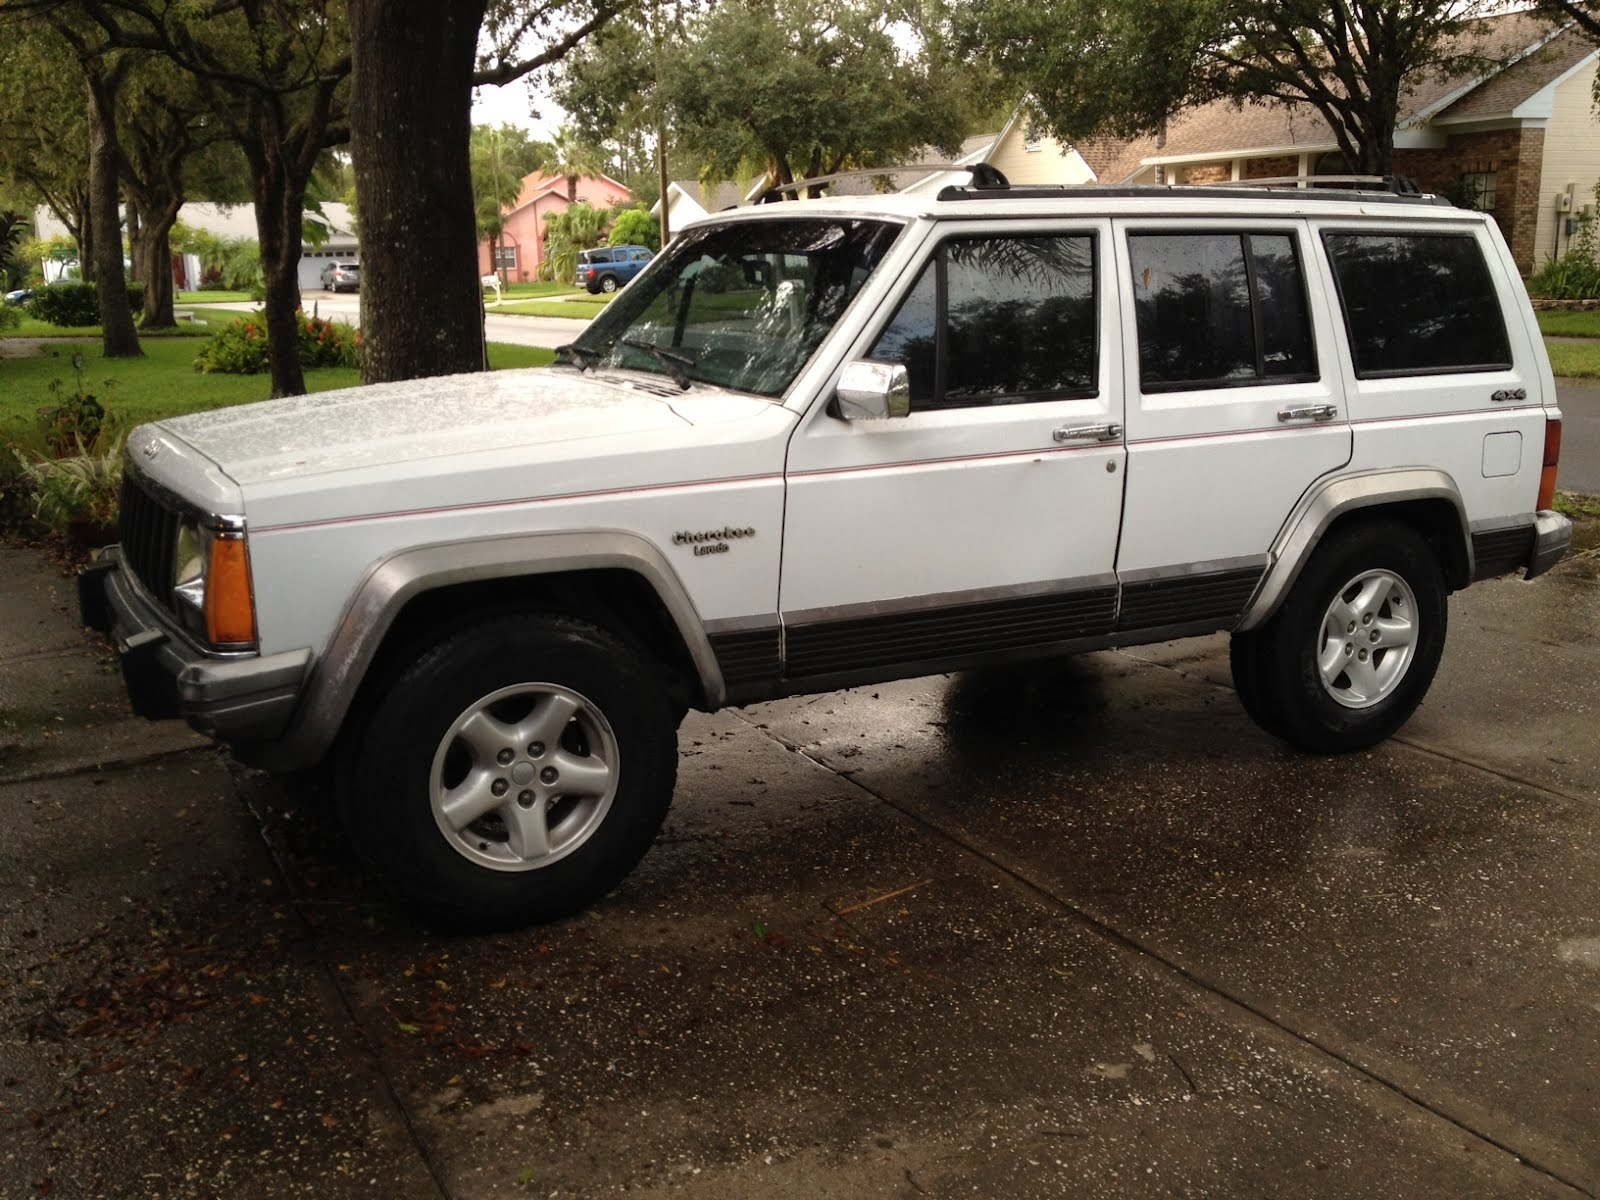 morrison's garage: new toy - 1992 jeep cherokee xj 4x4